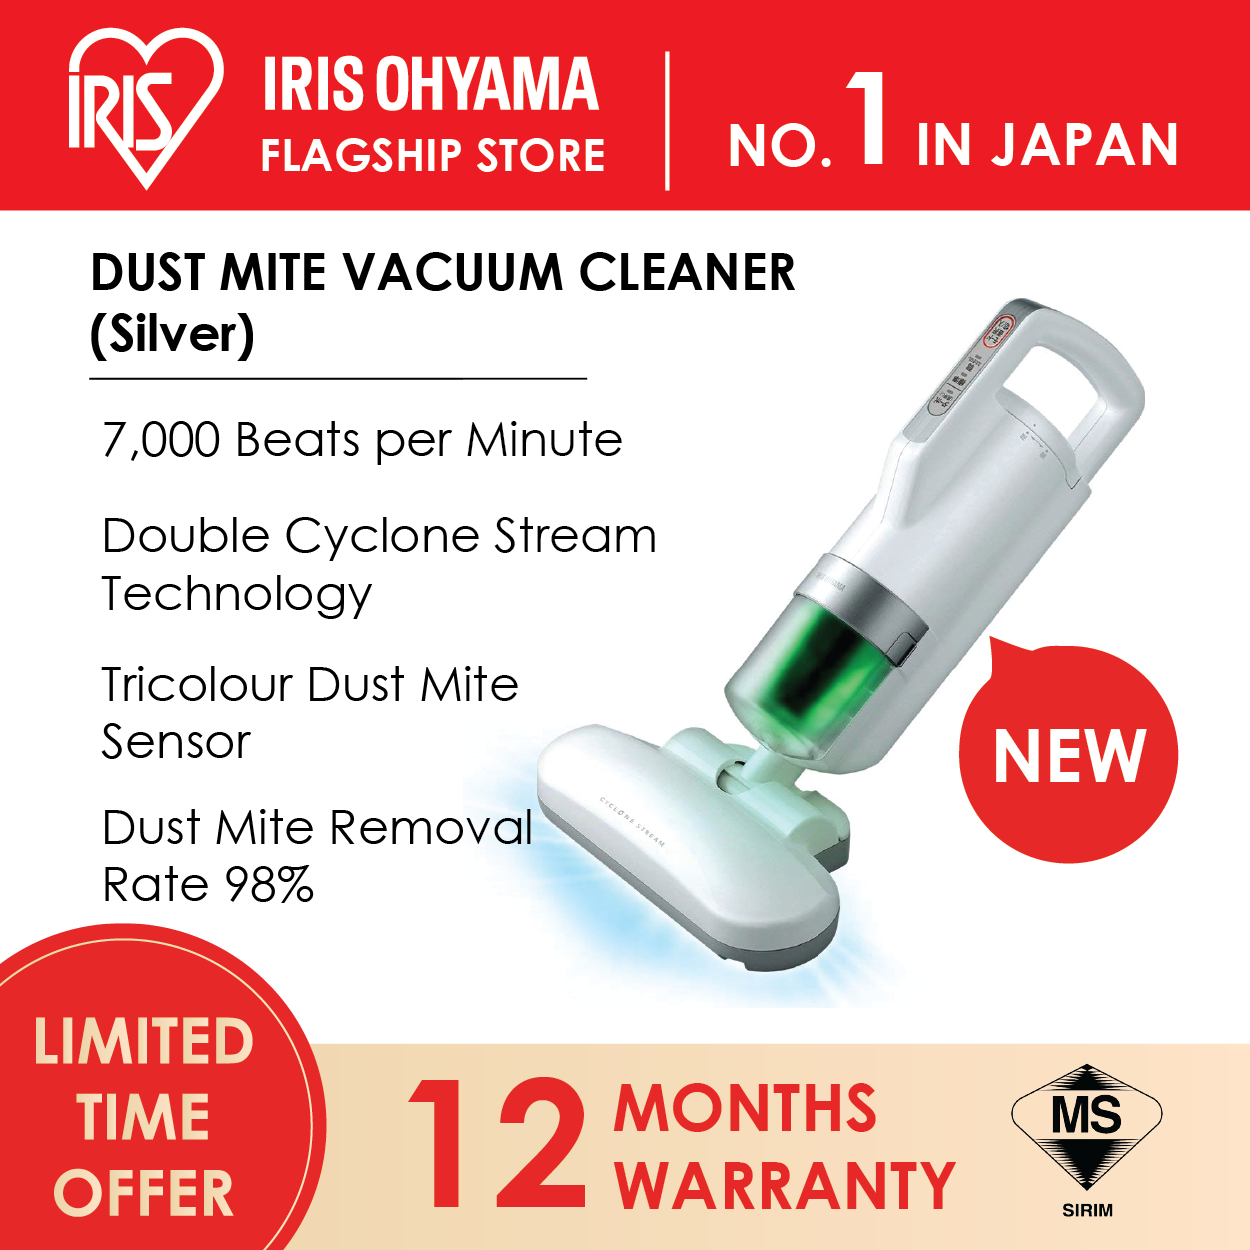 IRIS OHYAMA IC-FAC3 Handheld Dust Mites Bedsheet Vacuum Cleaner (Vibration 7,000 Times / minute) (12 Months Warranty) - SILVER Color